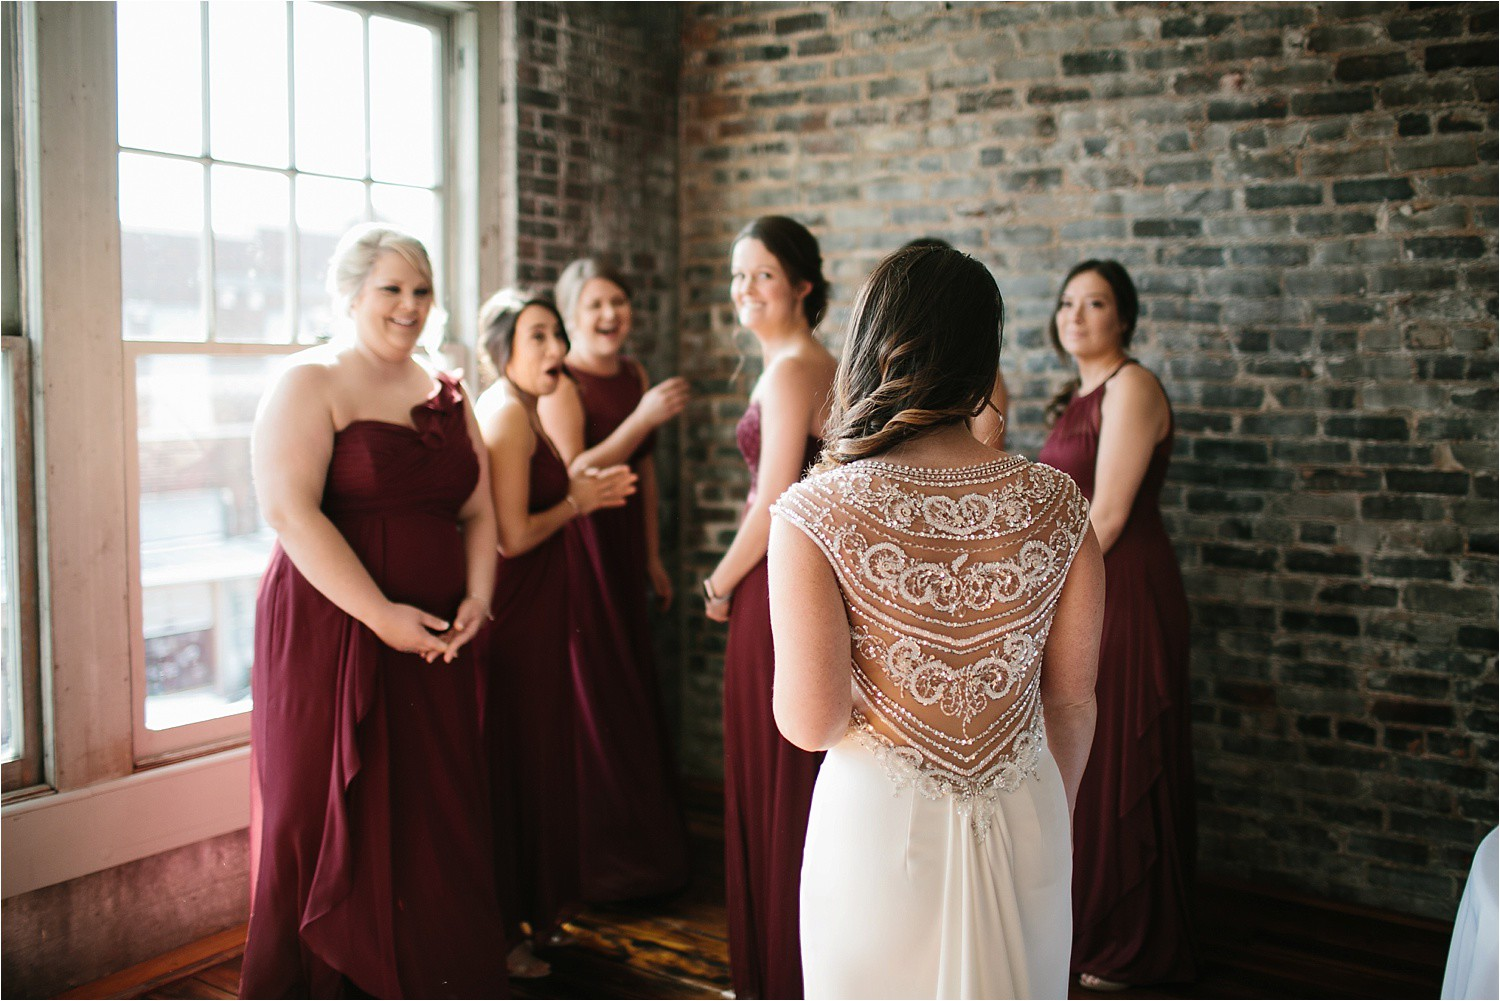 whittney-drew-__-an-intimate-wine-and-navy-wedding-in-an-industrial-venue-at-loft-123-in-paris-tx-by-north-texas-wedding-photographer-rachel-meagan-photography-_-014